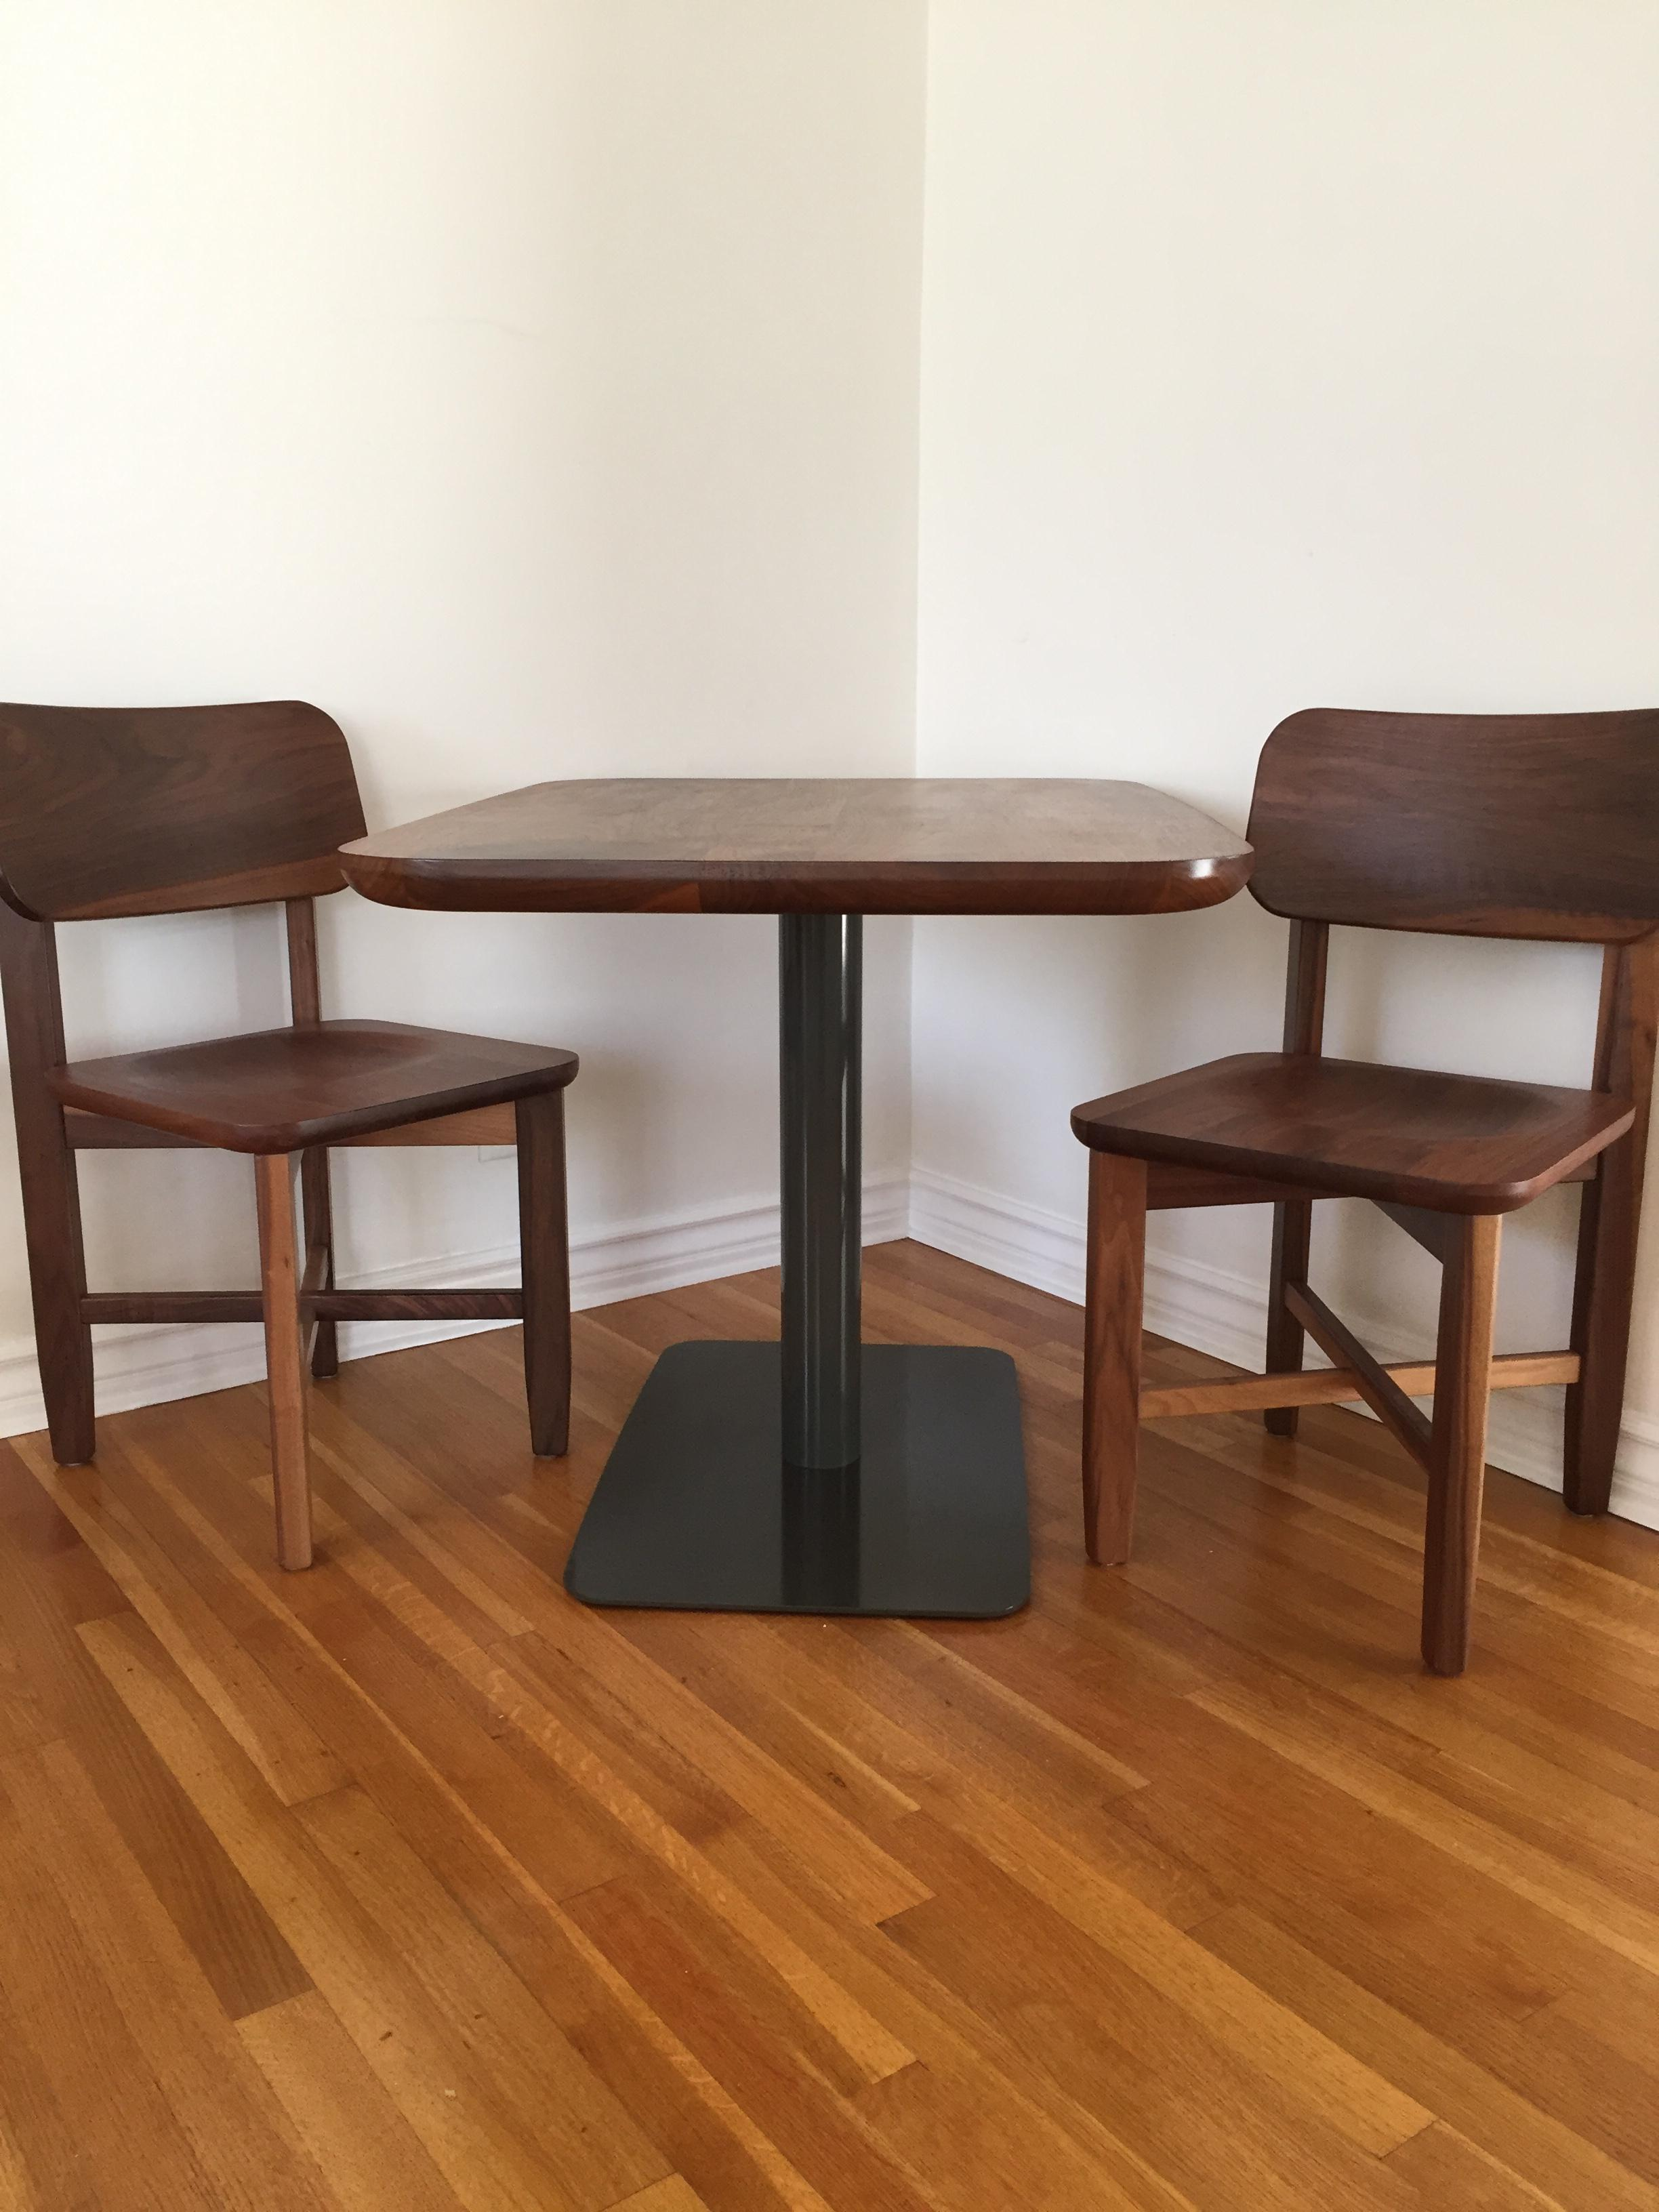 Small Walnut Cafe Table U0026 Two Chairs   Handcrafted   Image 2 ...